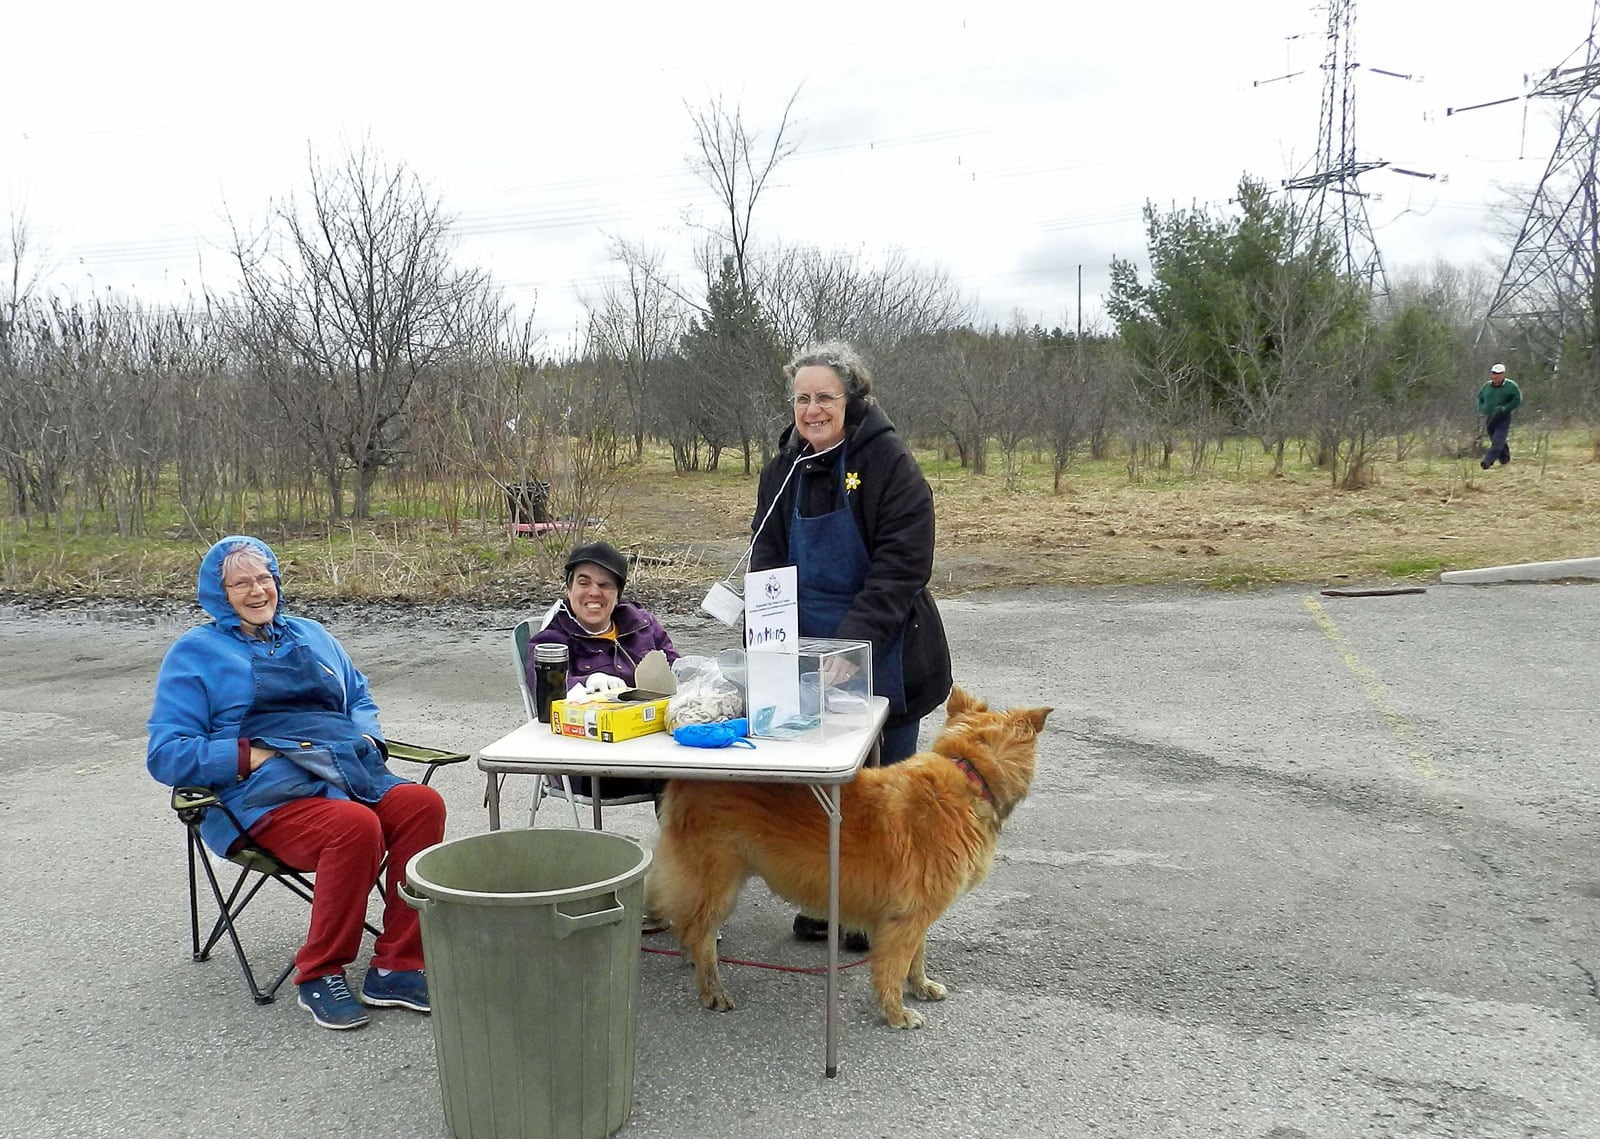 Dagmar VanBeselaere, Jennifer Harris and Julie More from Responsible Dog Owners of Canada hand out gloves, bags and dog biscuits near Shea Woods.